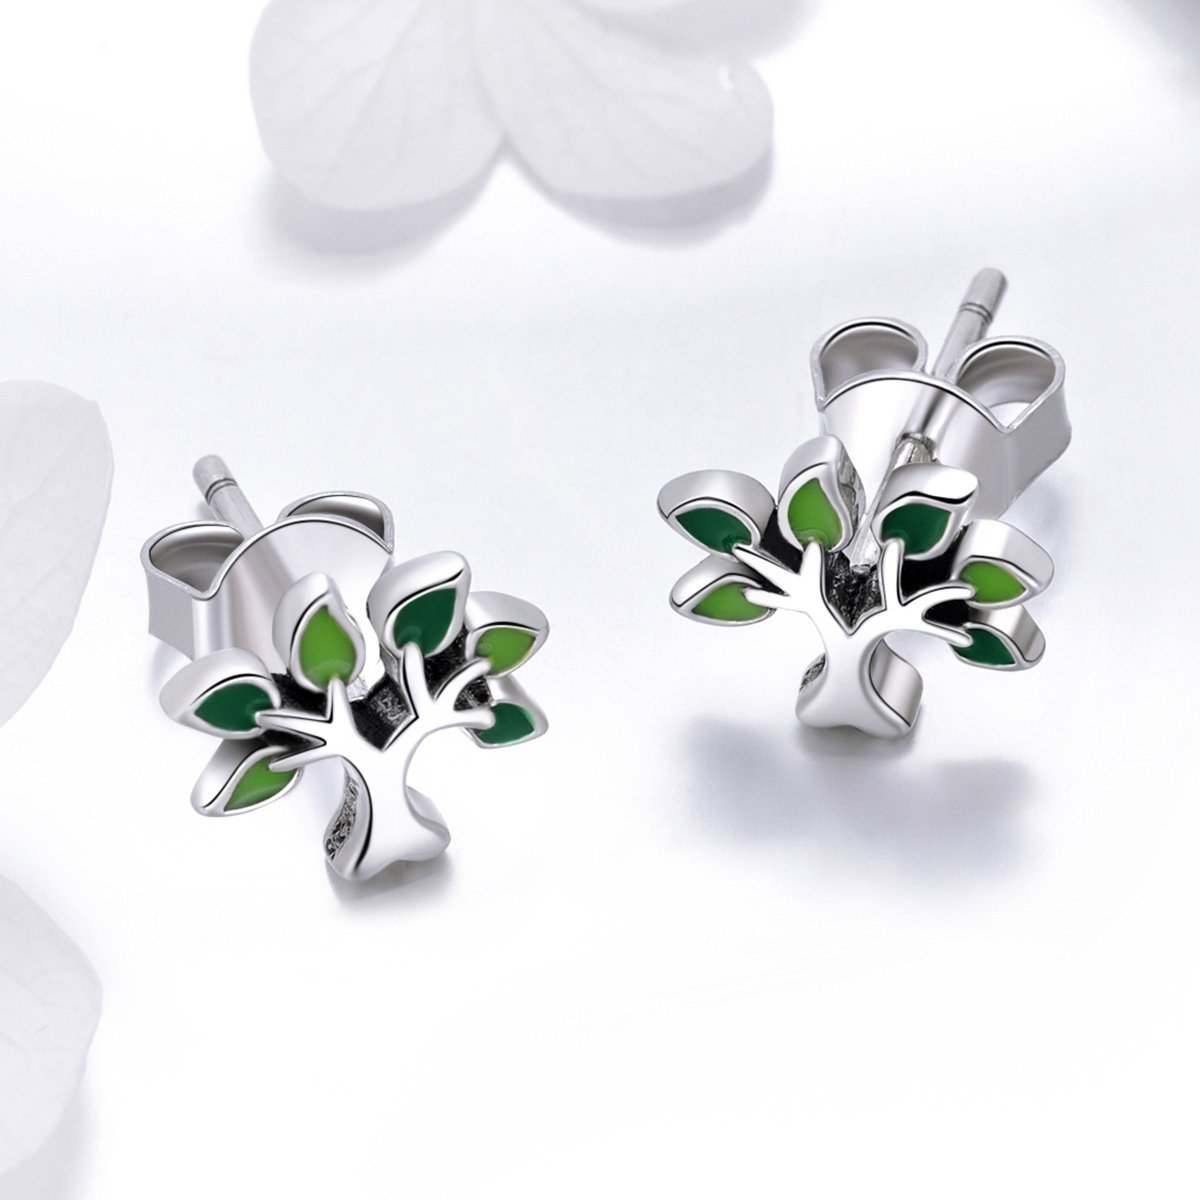 BISAER Tree of Life 925 Sterling Silver Stud Earrings with Green Enamel Leaves, Cute Post Stud Earring Hypoallergenic Jewelry for Women. by BISAER (Image #3)